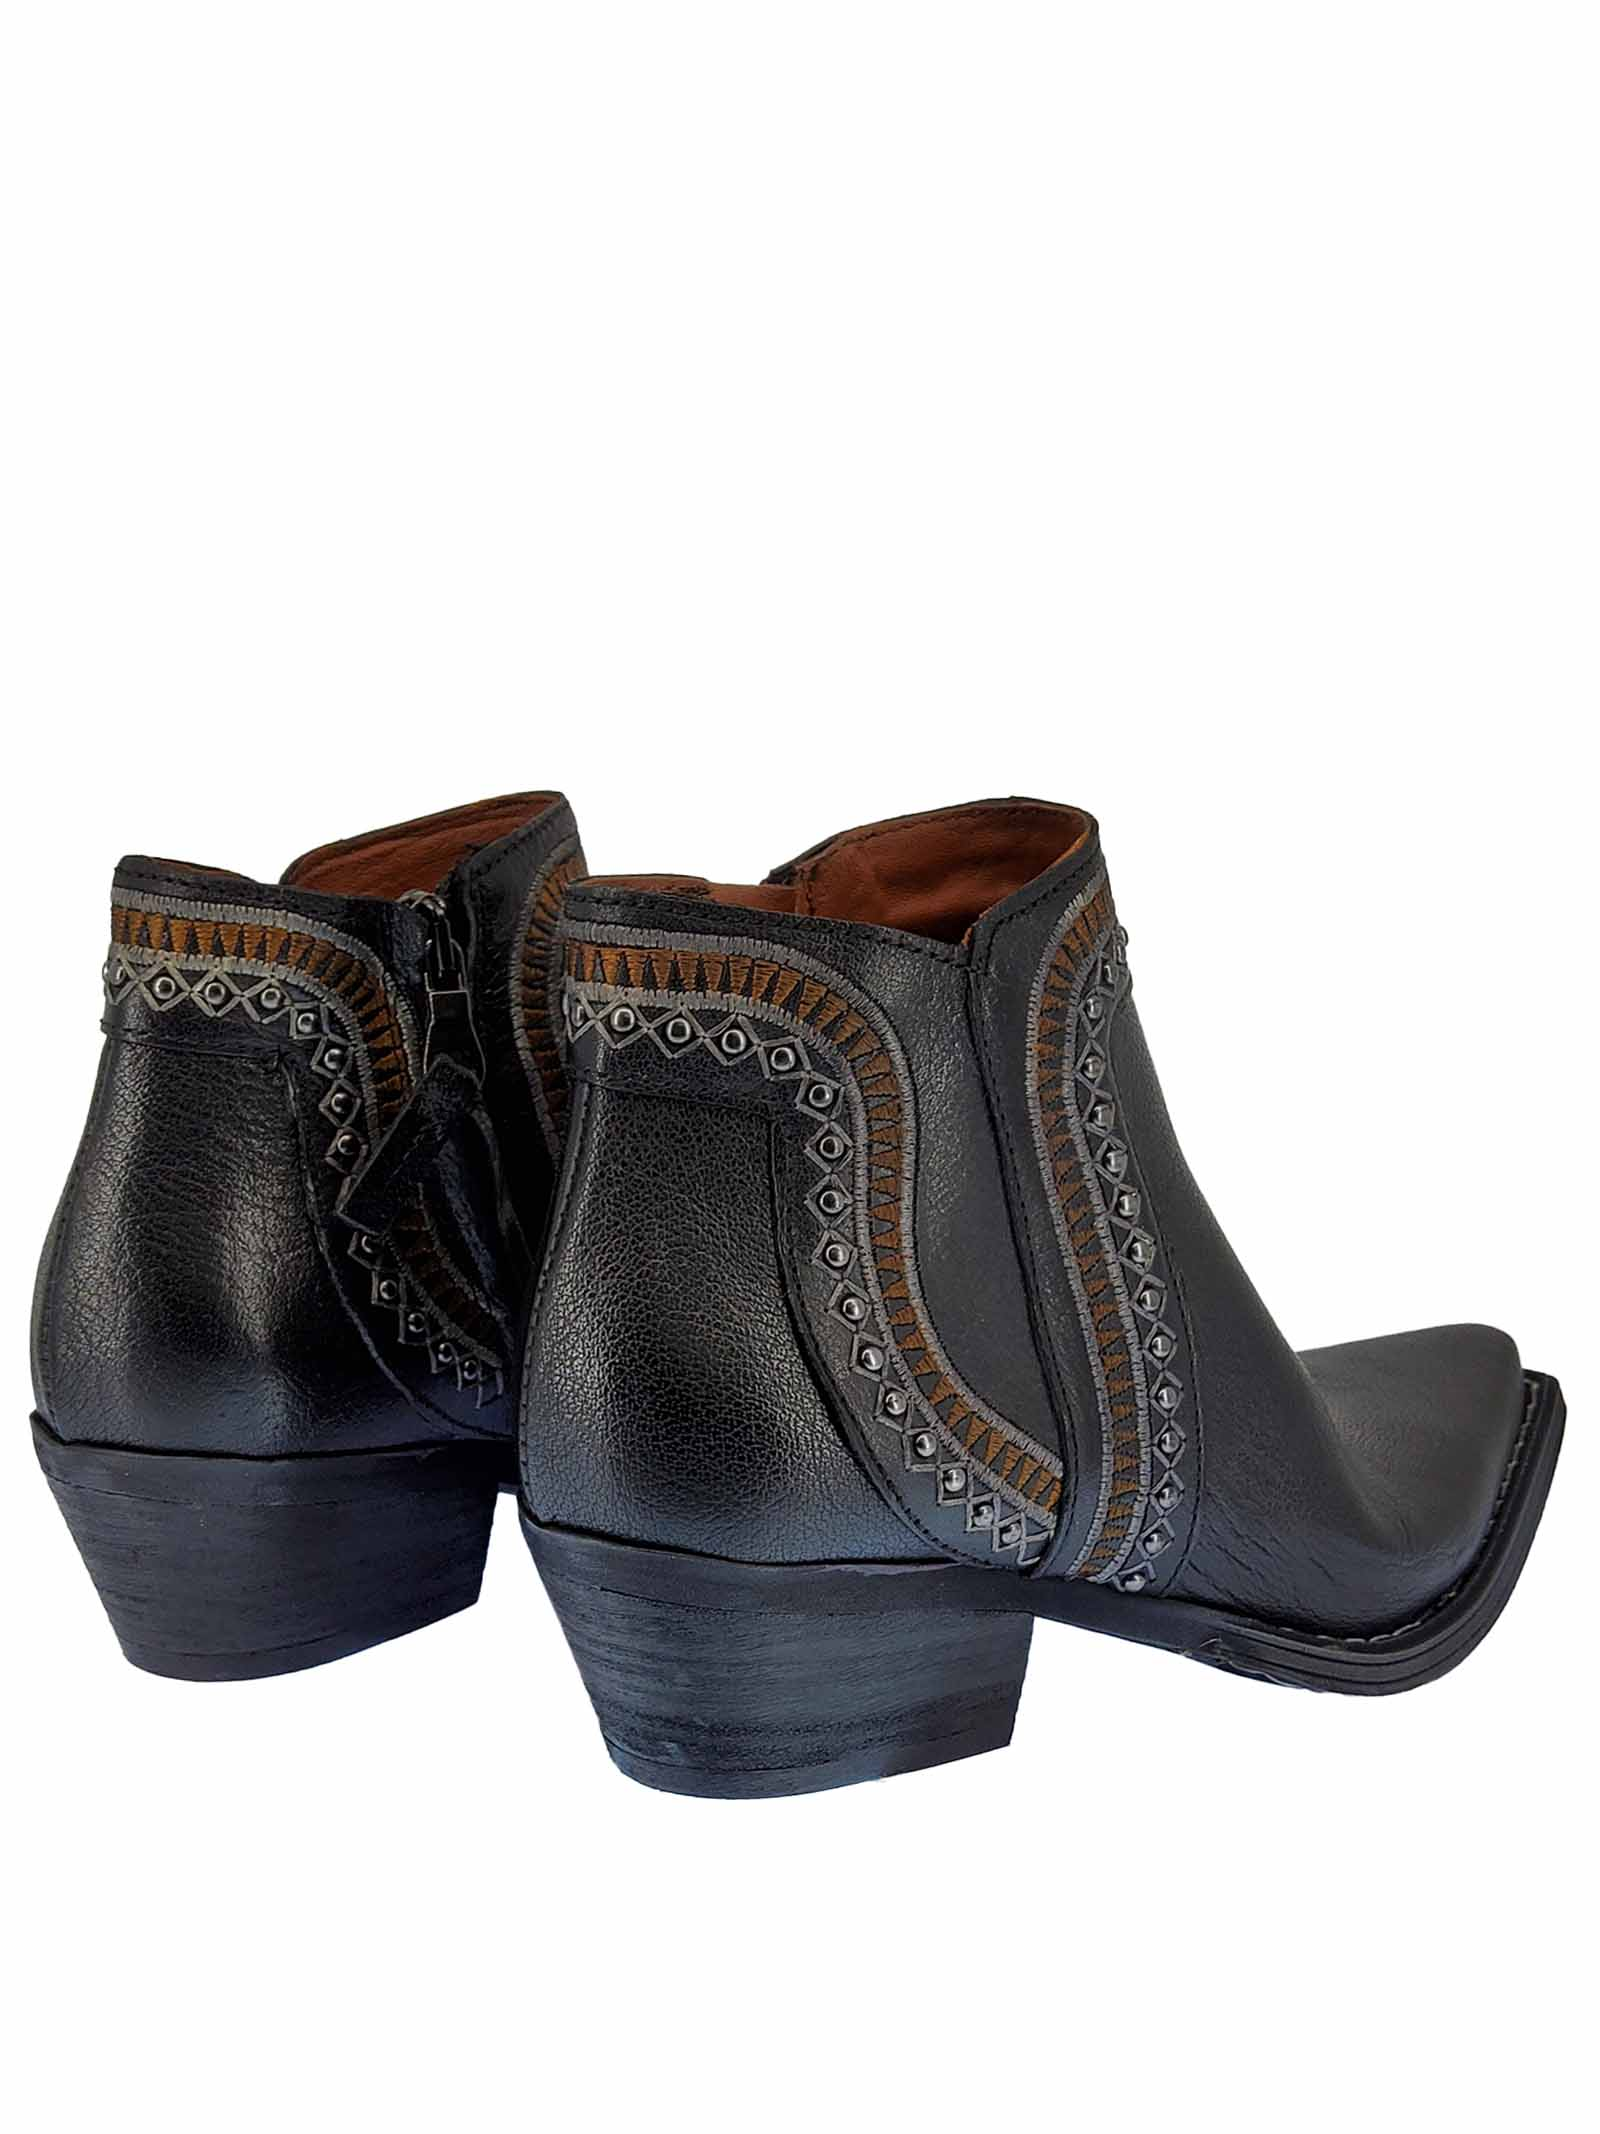 Women's Shoes Texans Ankle Boots in Black Leather with Studs and Side Zip Stitching and Square Toe Zoe   Ankle Boots   NEZ05001